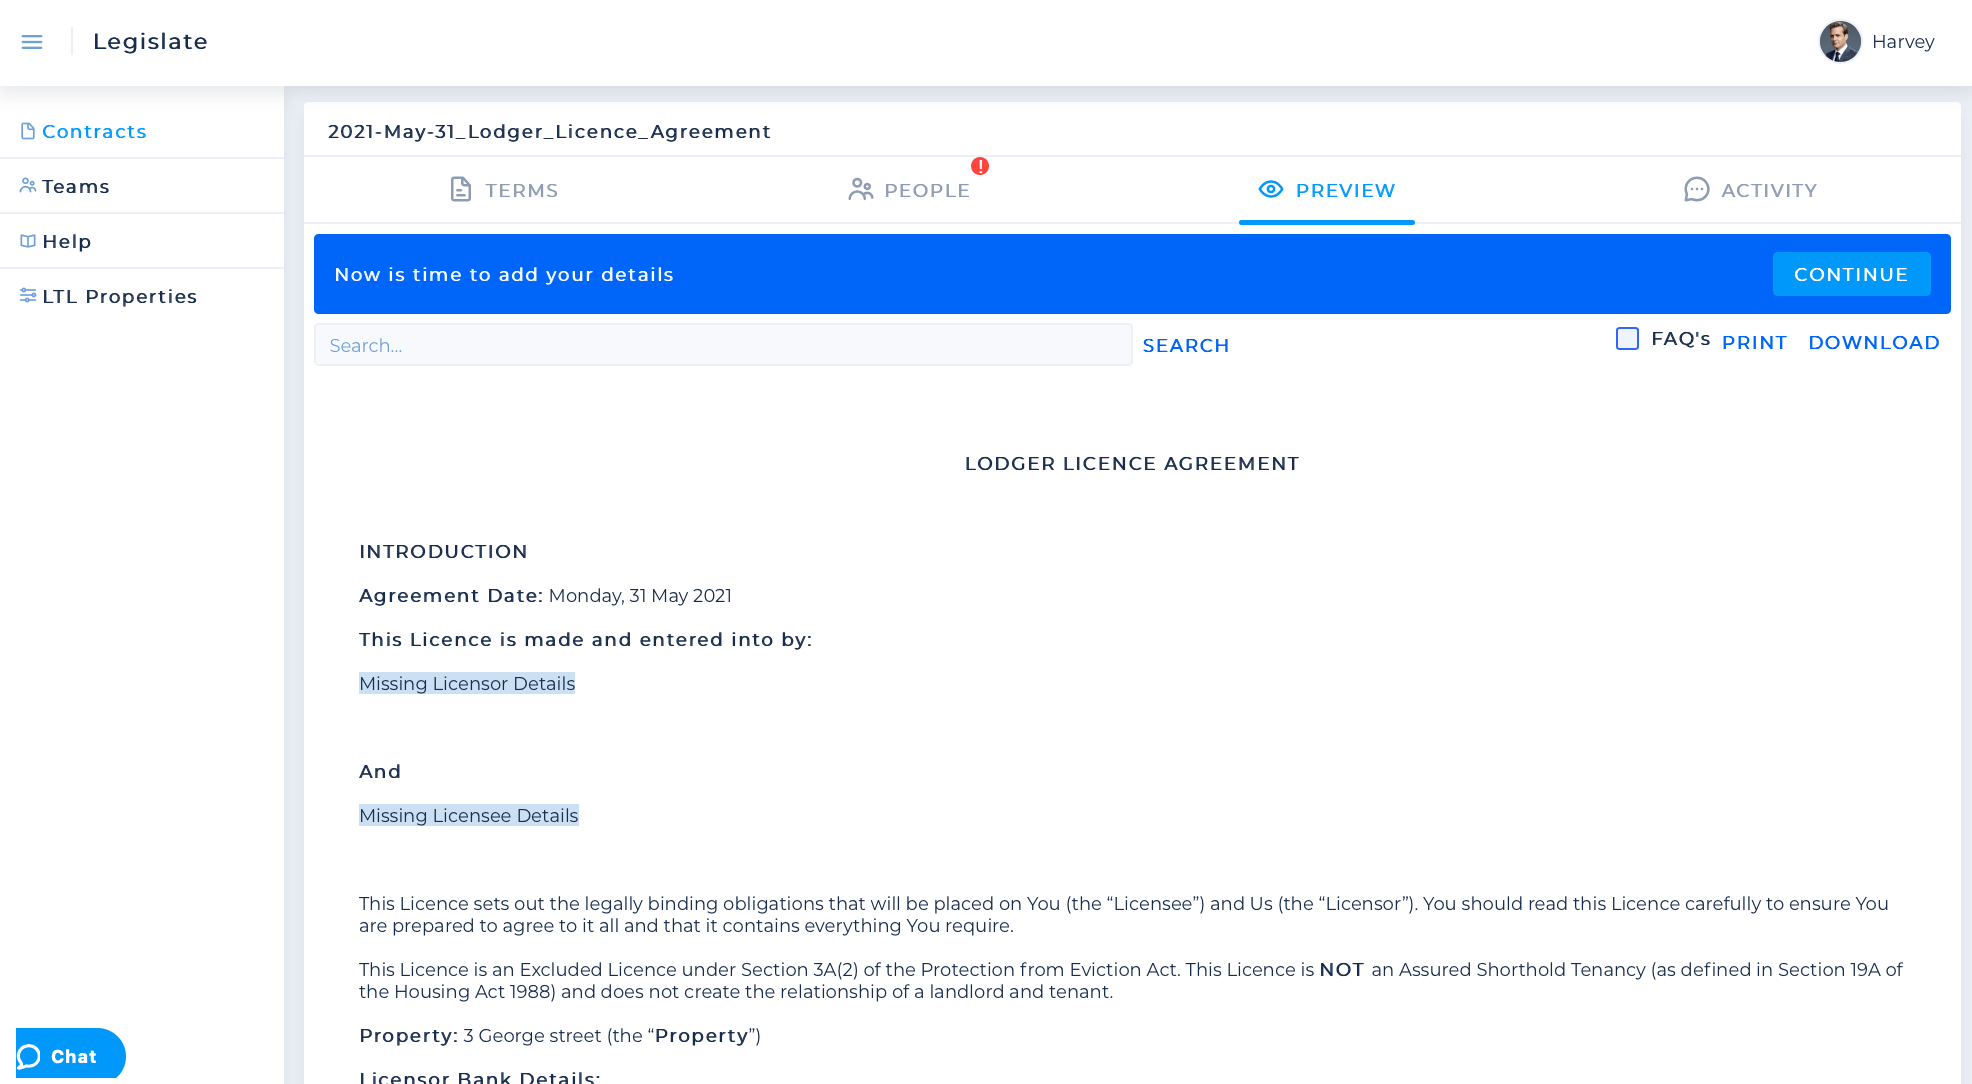 Screenshot of the Lodger Licence Agreement